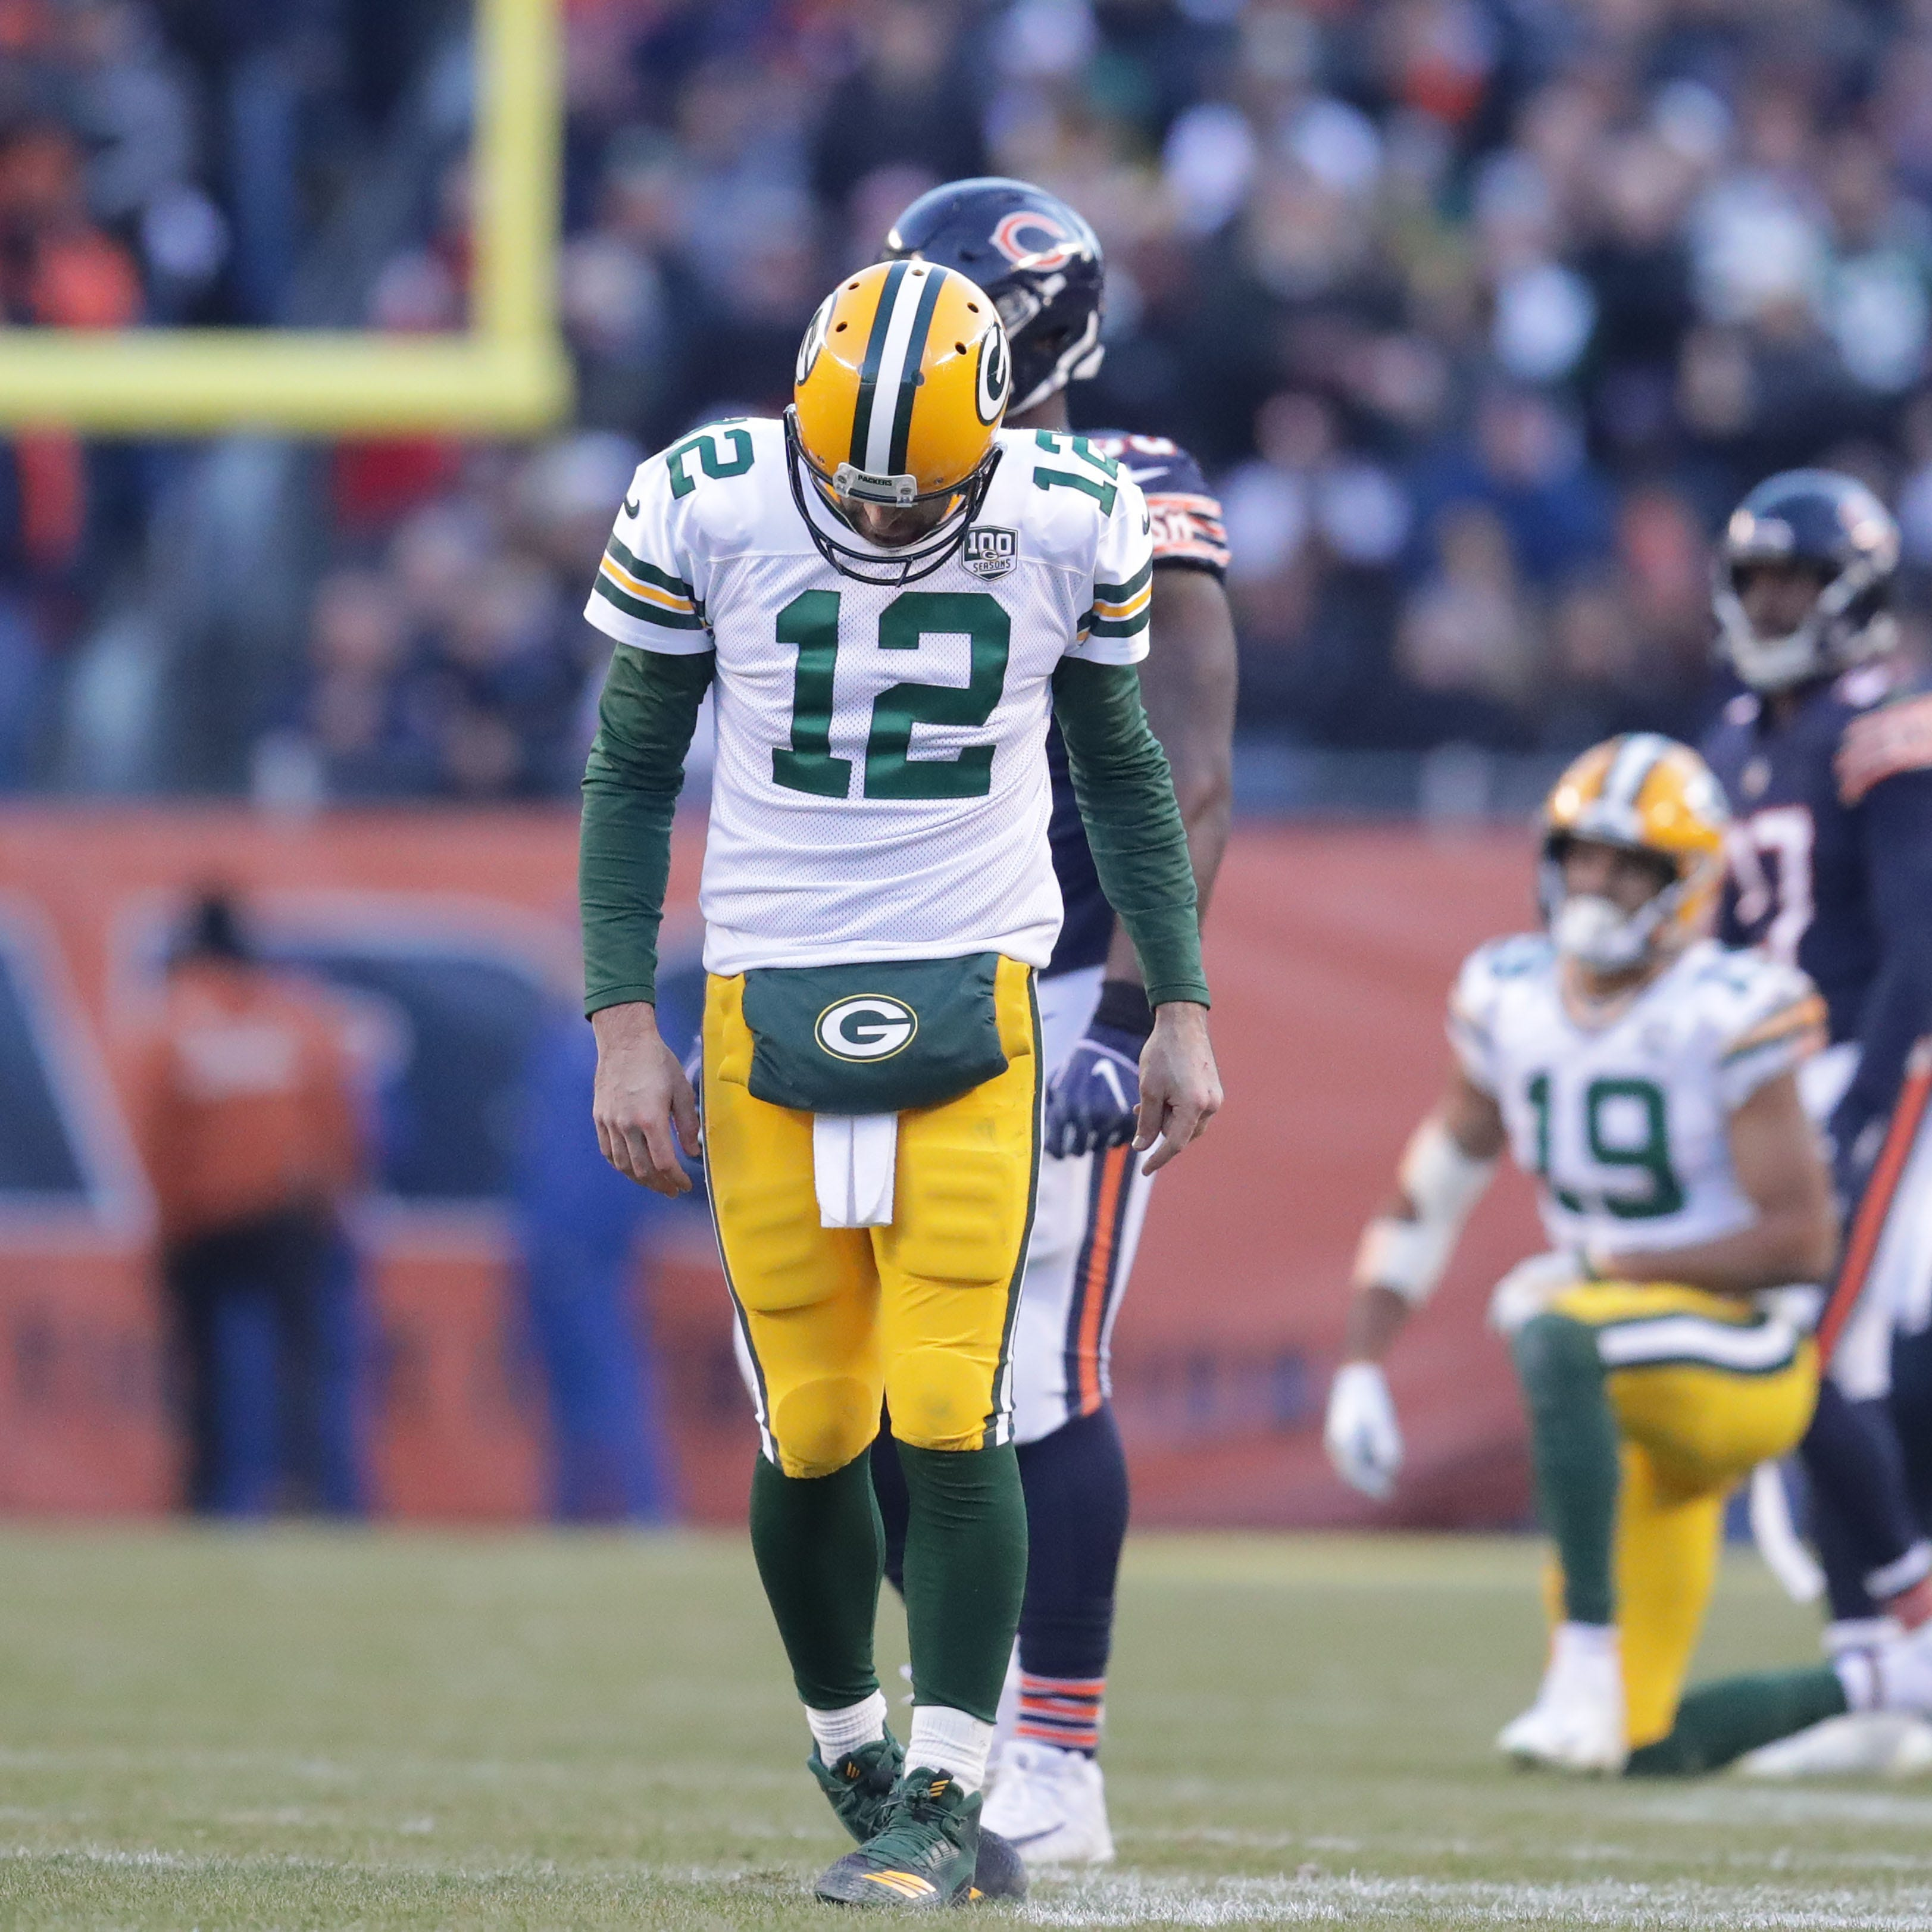 Dougherty: Packers must point to 2019 to salvage something from dismal season